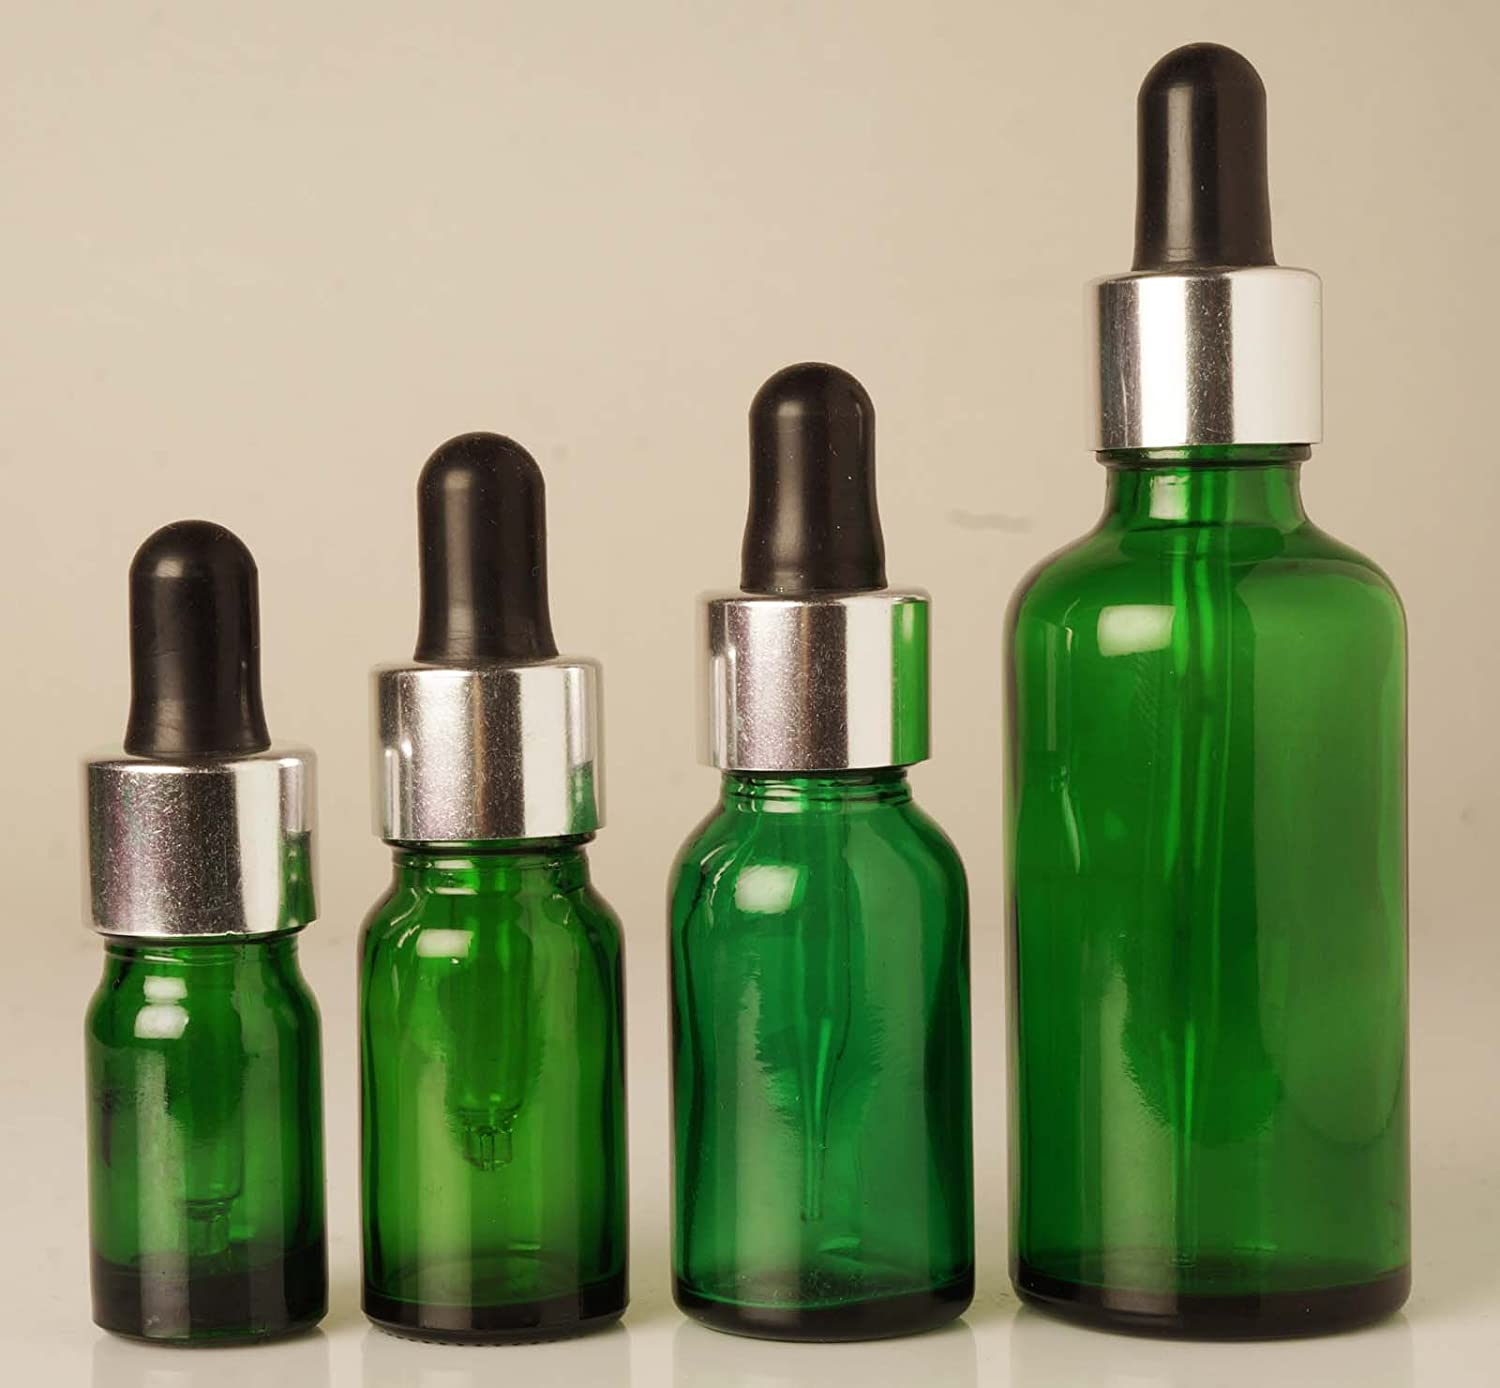 Lot of 6 x 10 ml Glass Bottles With Dropper Pipettes For Essential Oils Empty Container Round Green Bottles MT Bottles & Jars